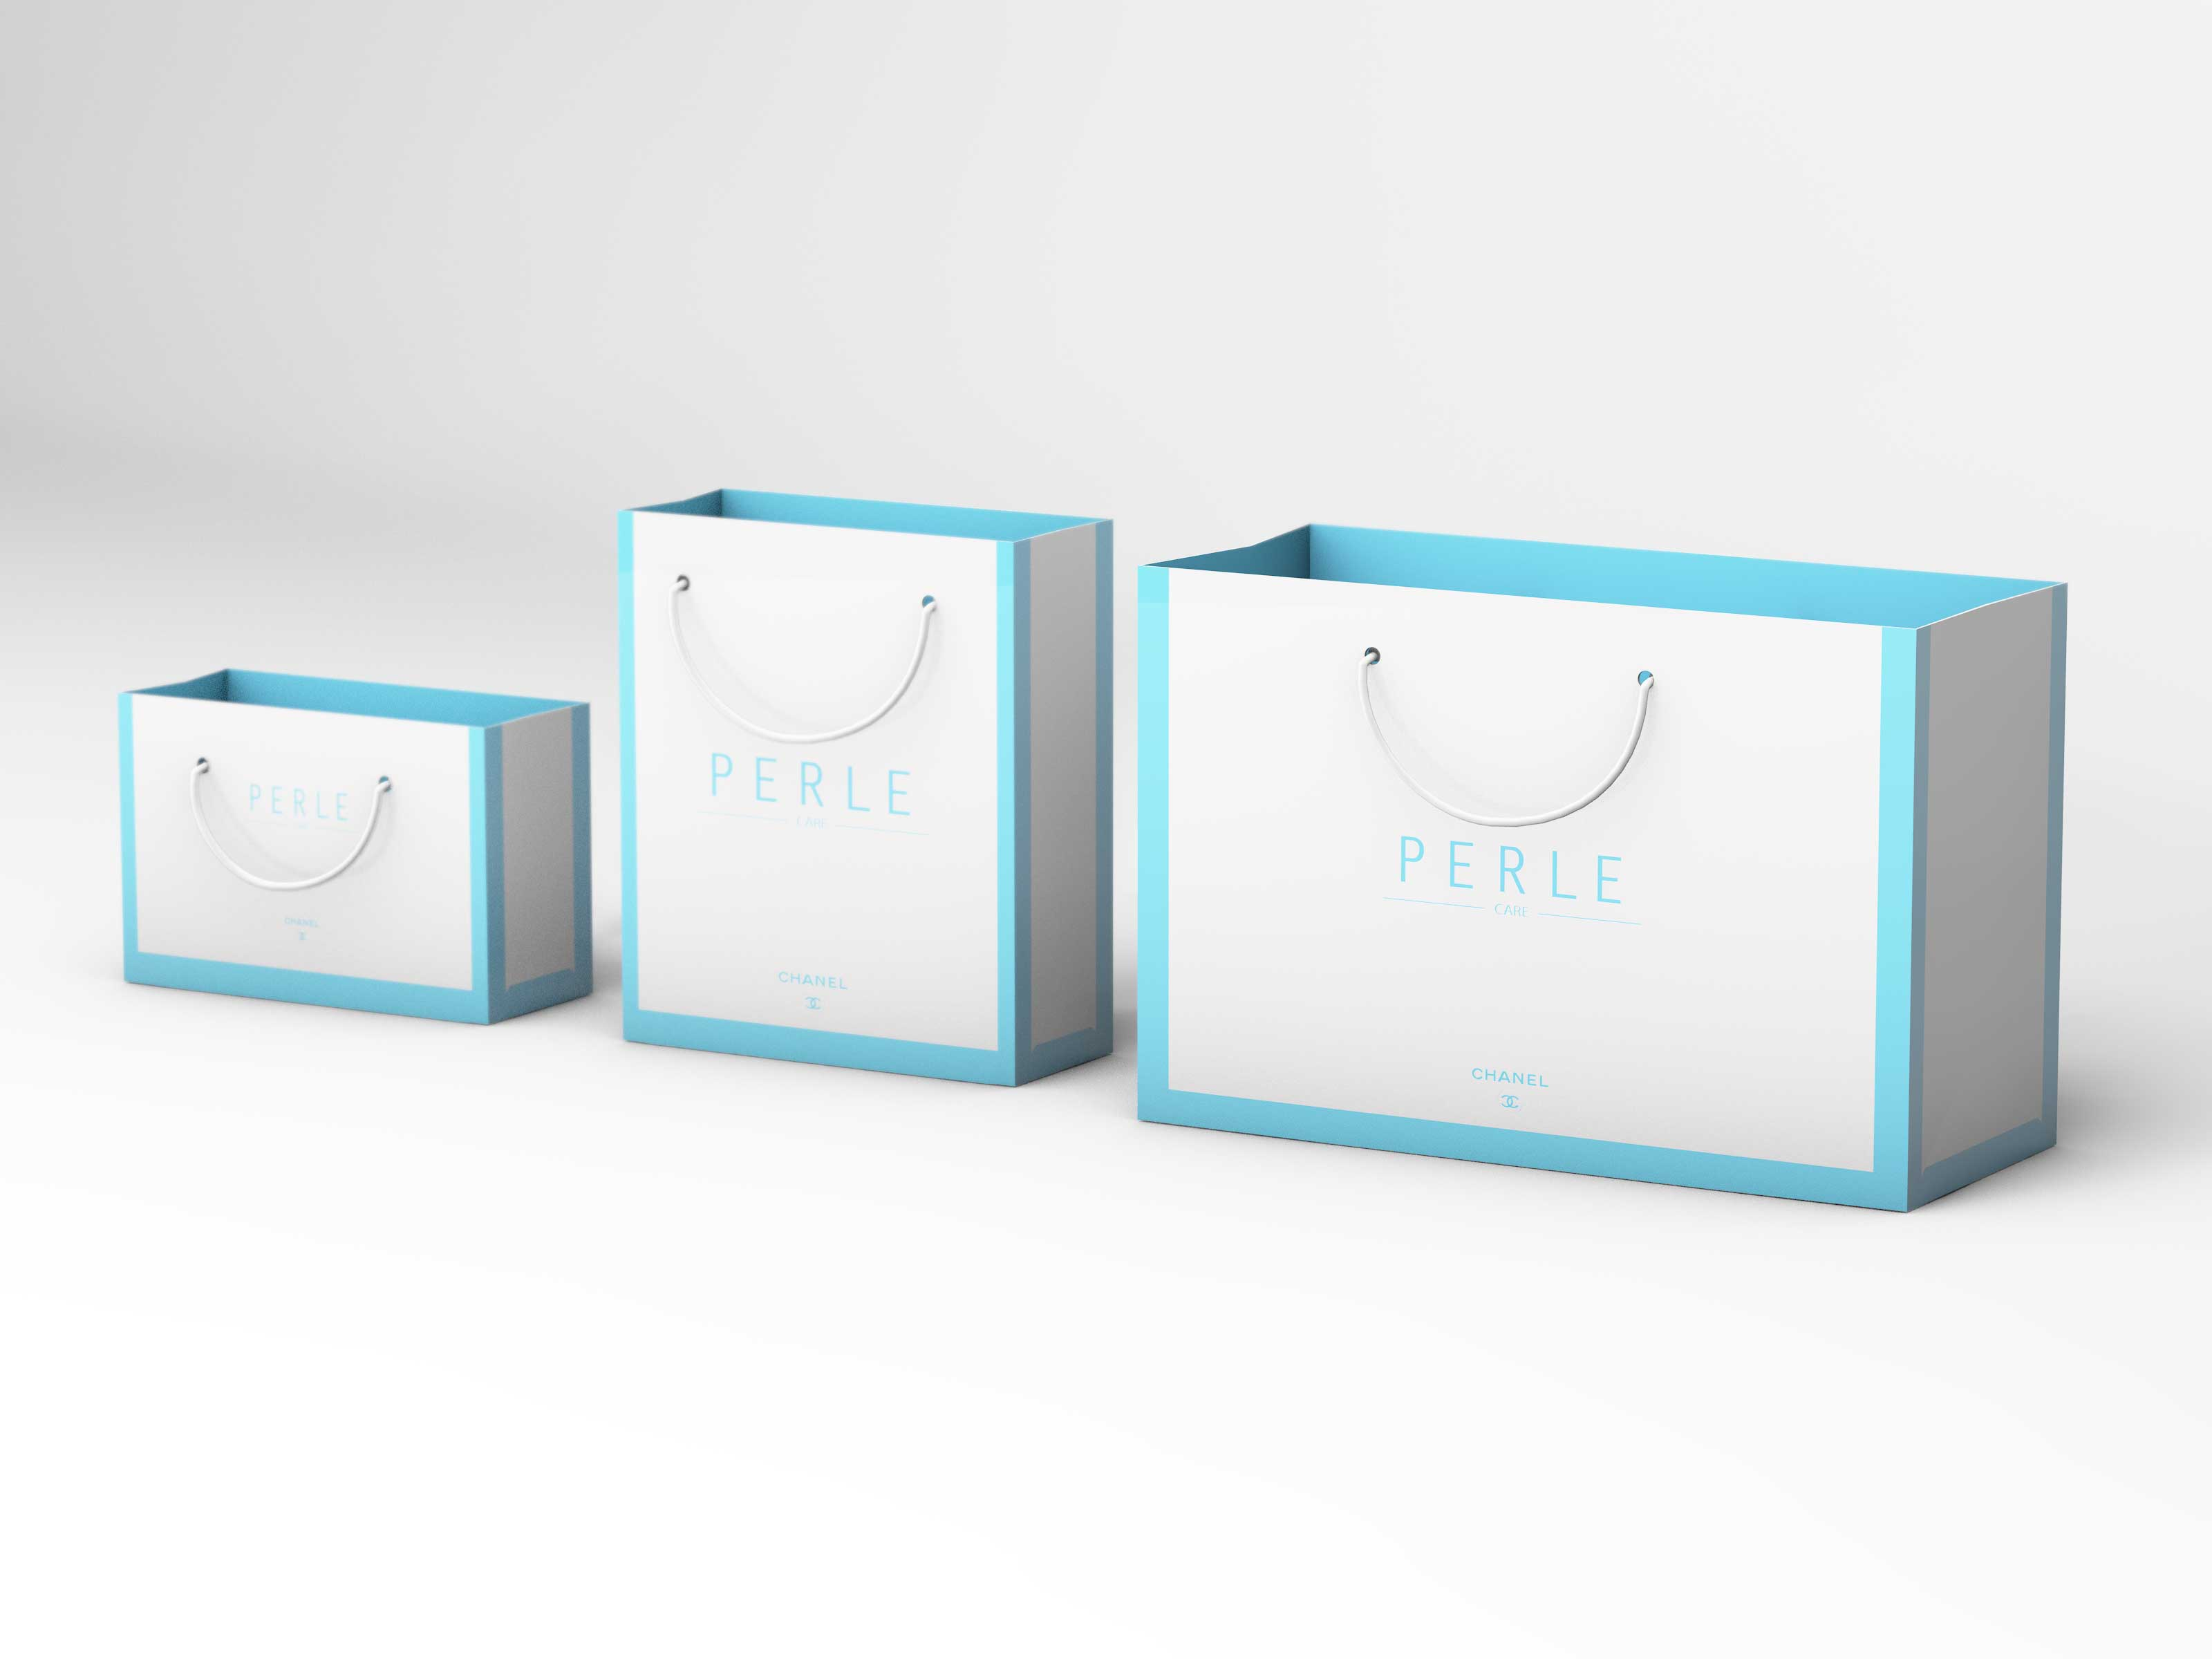 Perle product lineup